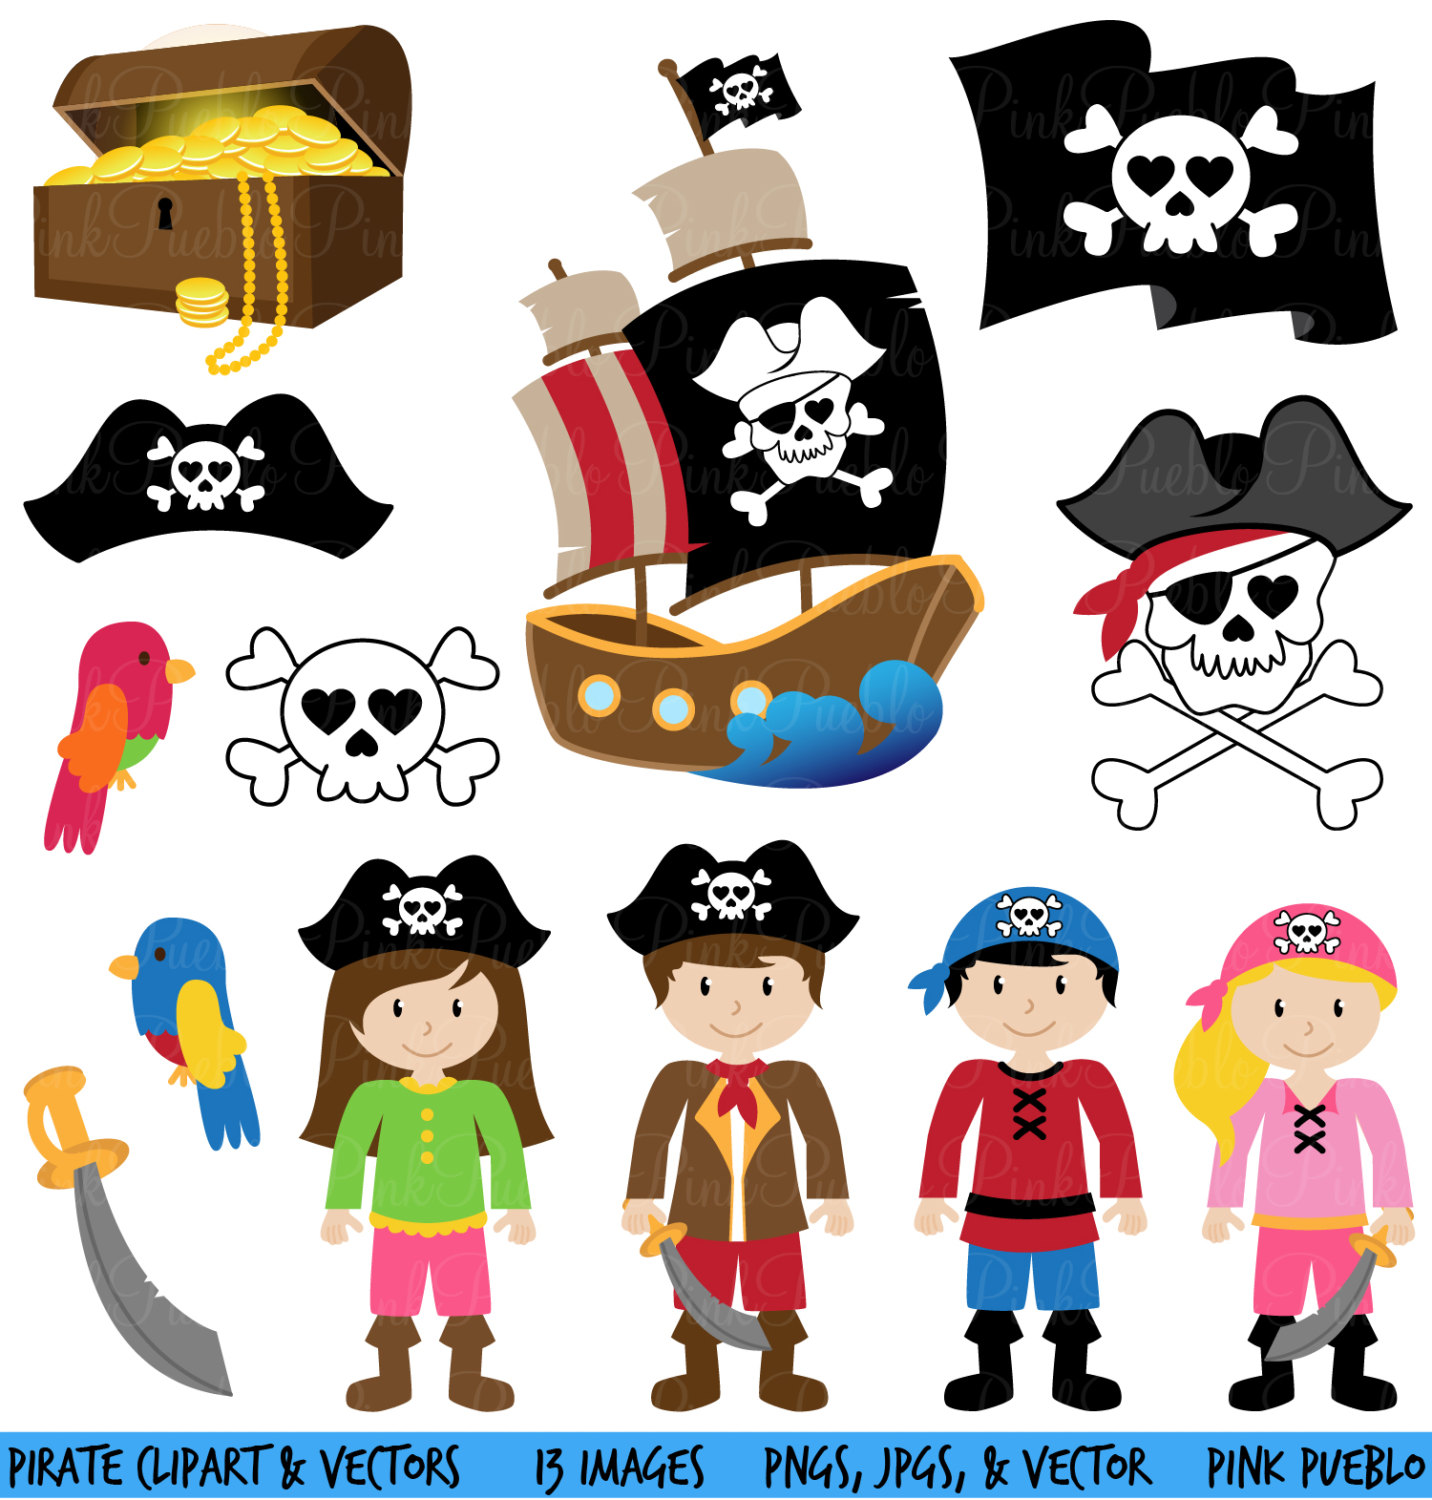 Caribbean clipart vector Pirate free pirate Free project